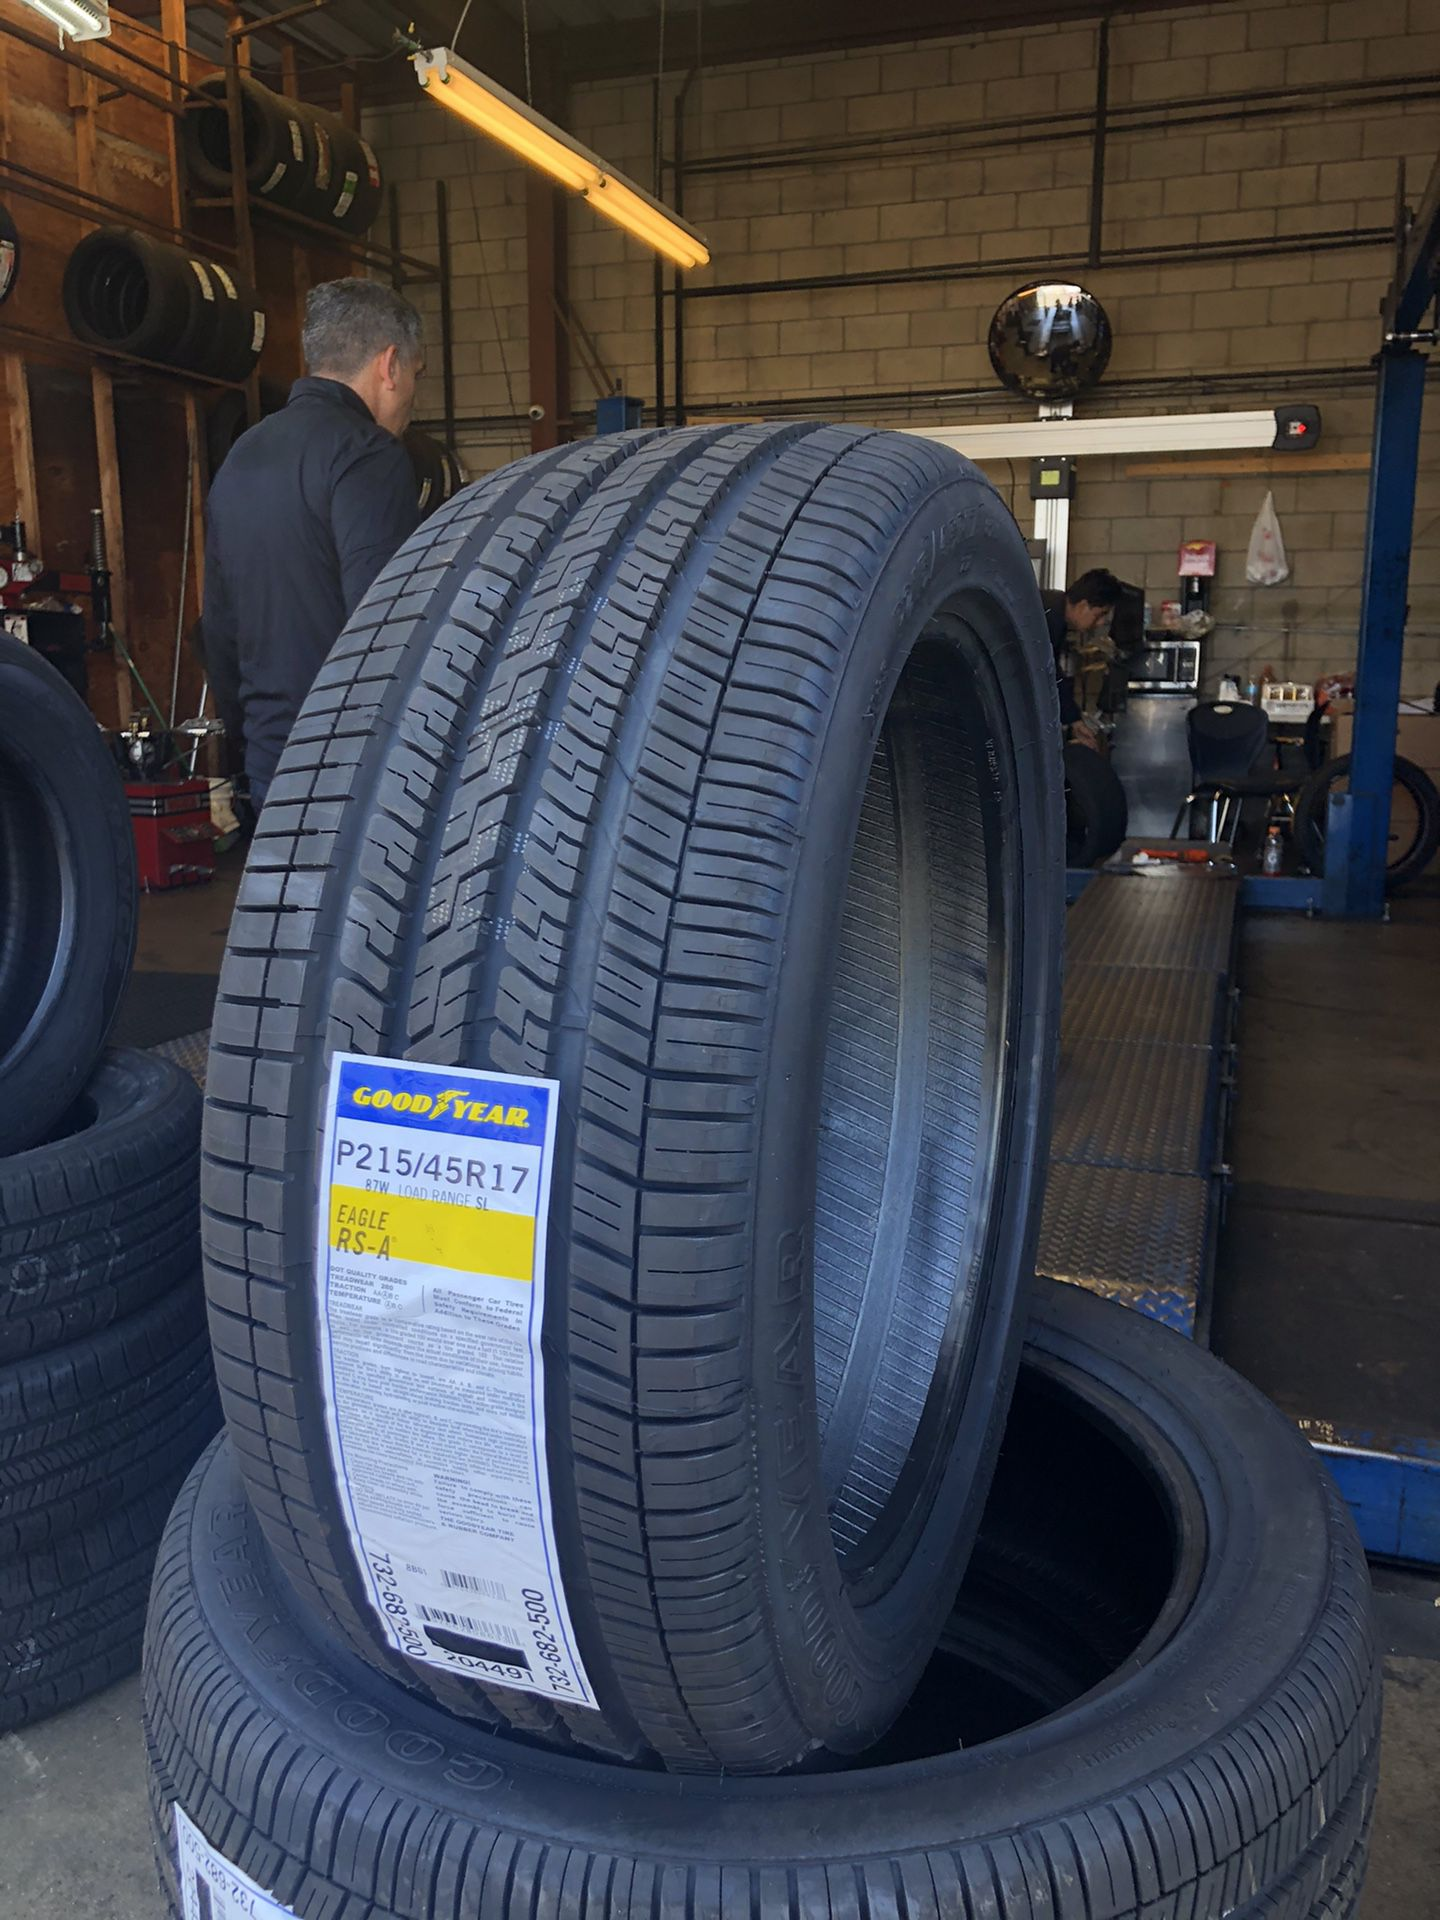 215/45/17 GOODYEAR 4 New Tires ❗️ MOUNTING AND BALANCE INCLUDED ❗️ We Do Aligments Too ❗️ We Open All Week ❗️ ❗️ 📲 📲